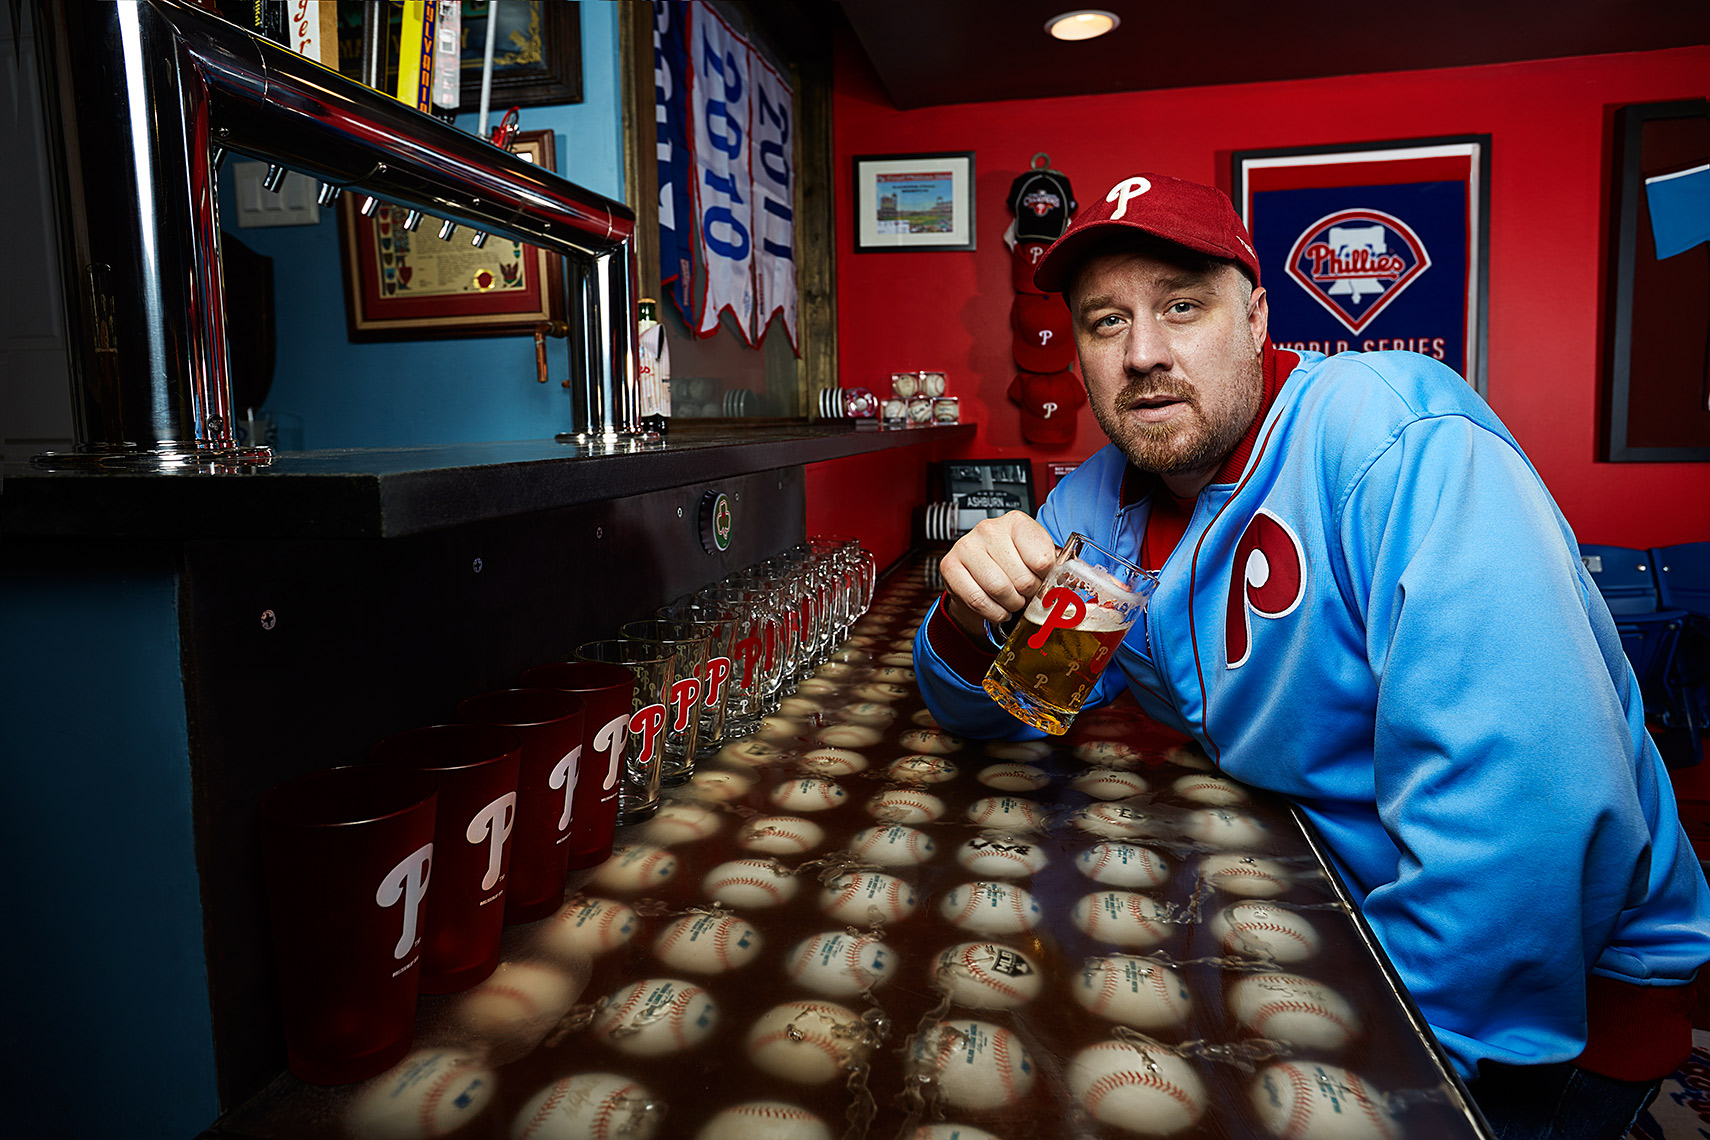 Philadelphia Photographer STEVE BOYLE - Philadelphia Phillies Fans - MLB Baseball